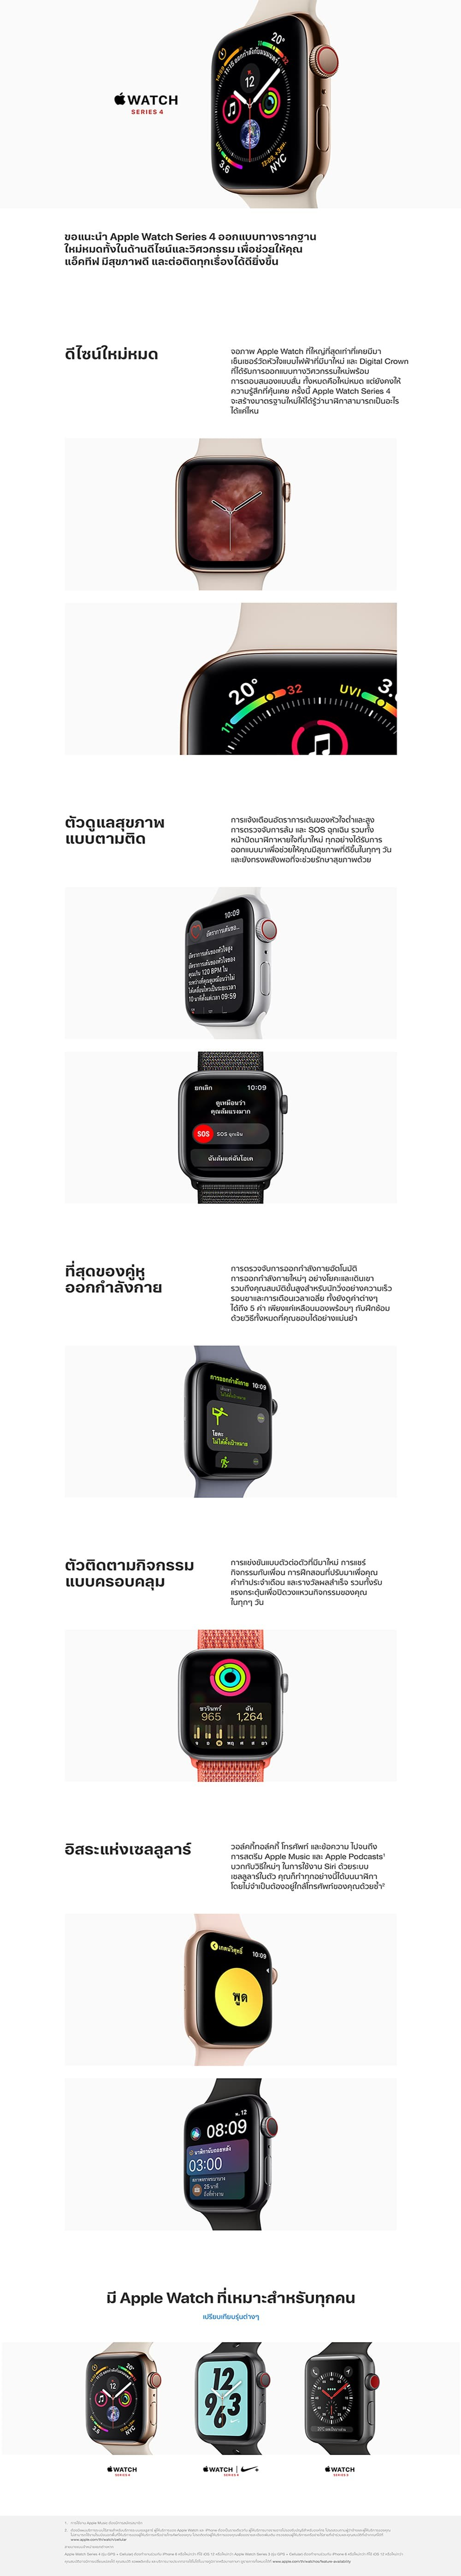 apple-watch4-spec.jpg